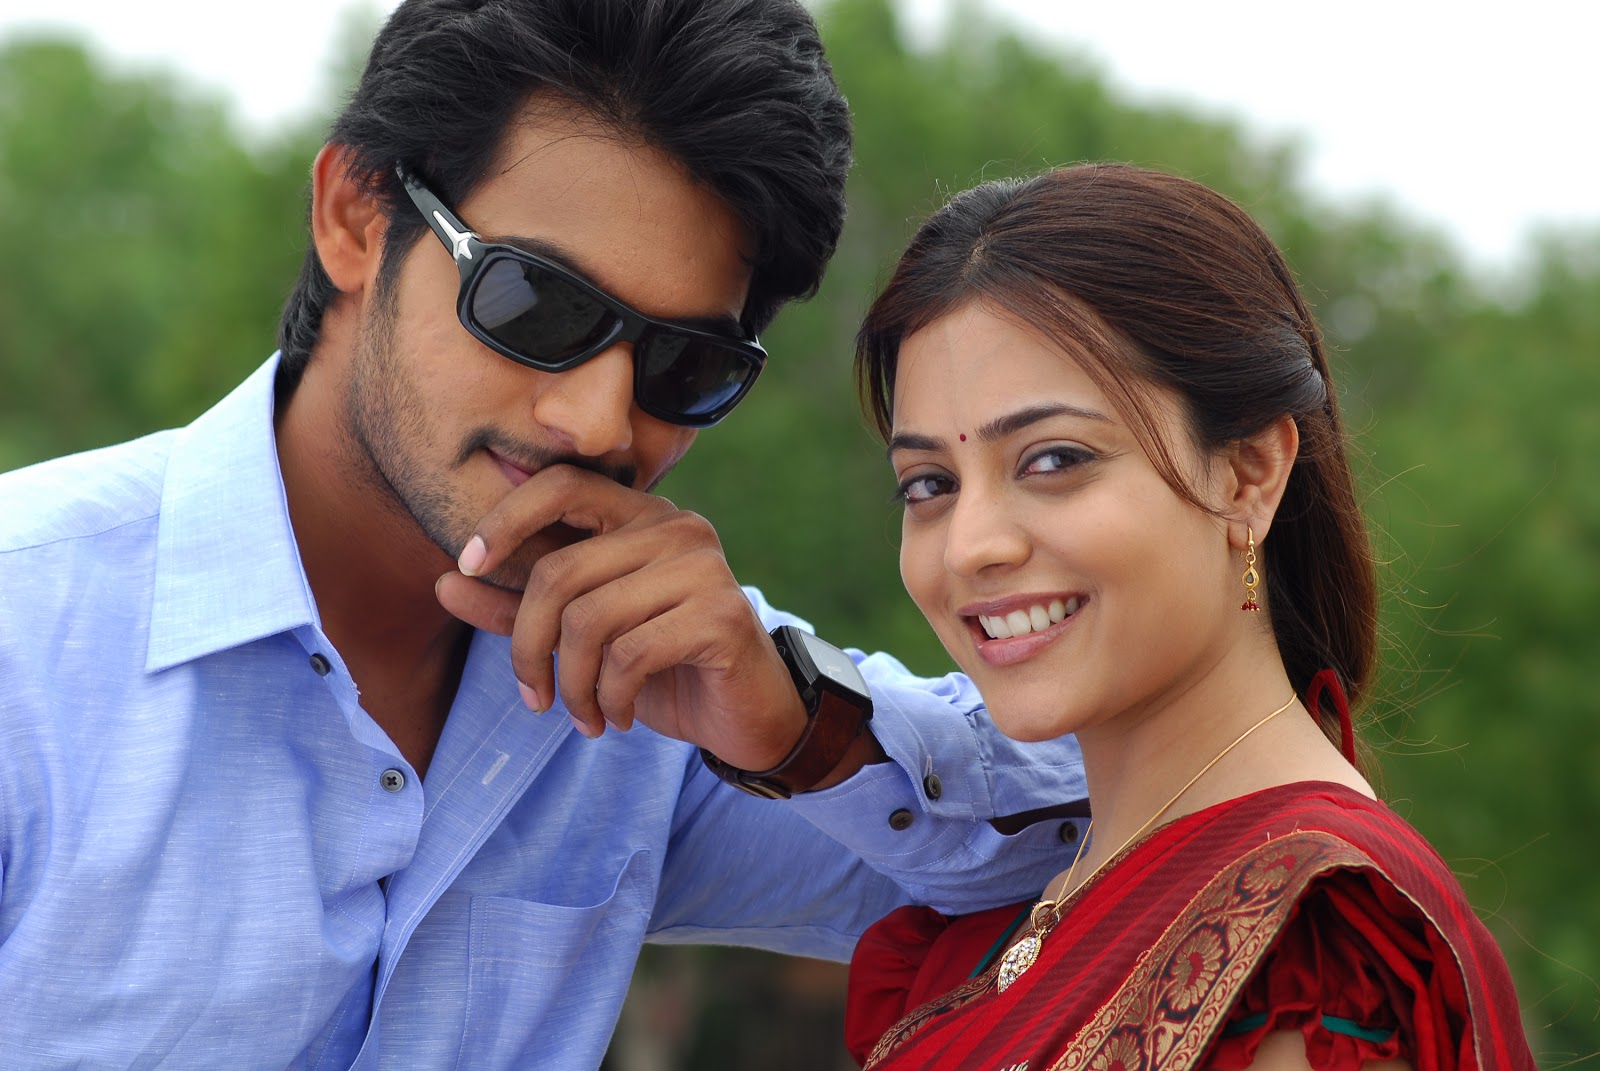 http://1.bp.blogspot.com/-Kl5NNN2s21c/UI_MXXyEZlI/AAAAAAAA-eE/AlS0fEFHVt0/s1600/sukumarudu_movie_new_photos_003.jpg